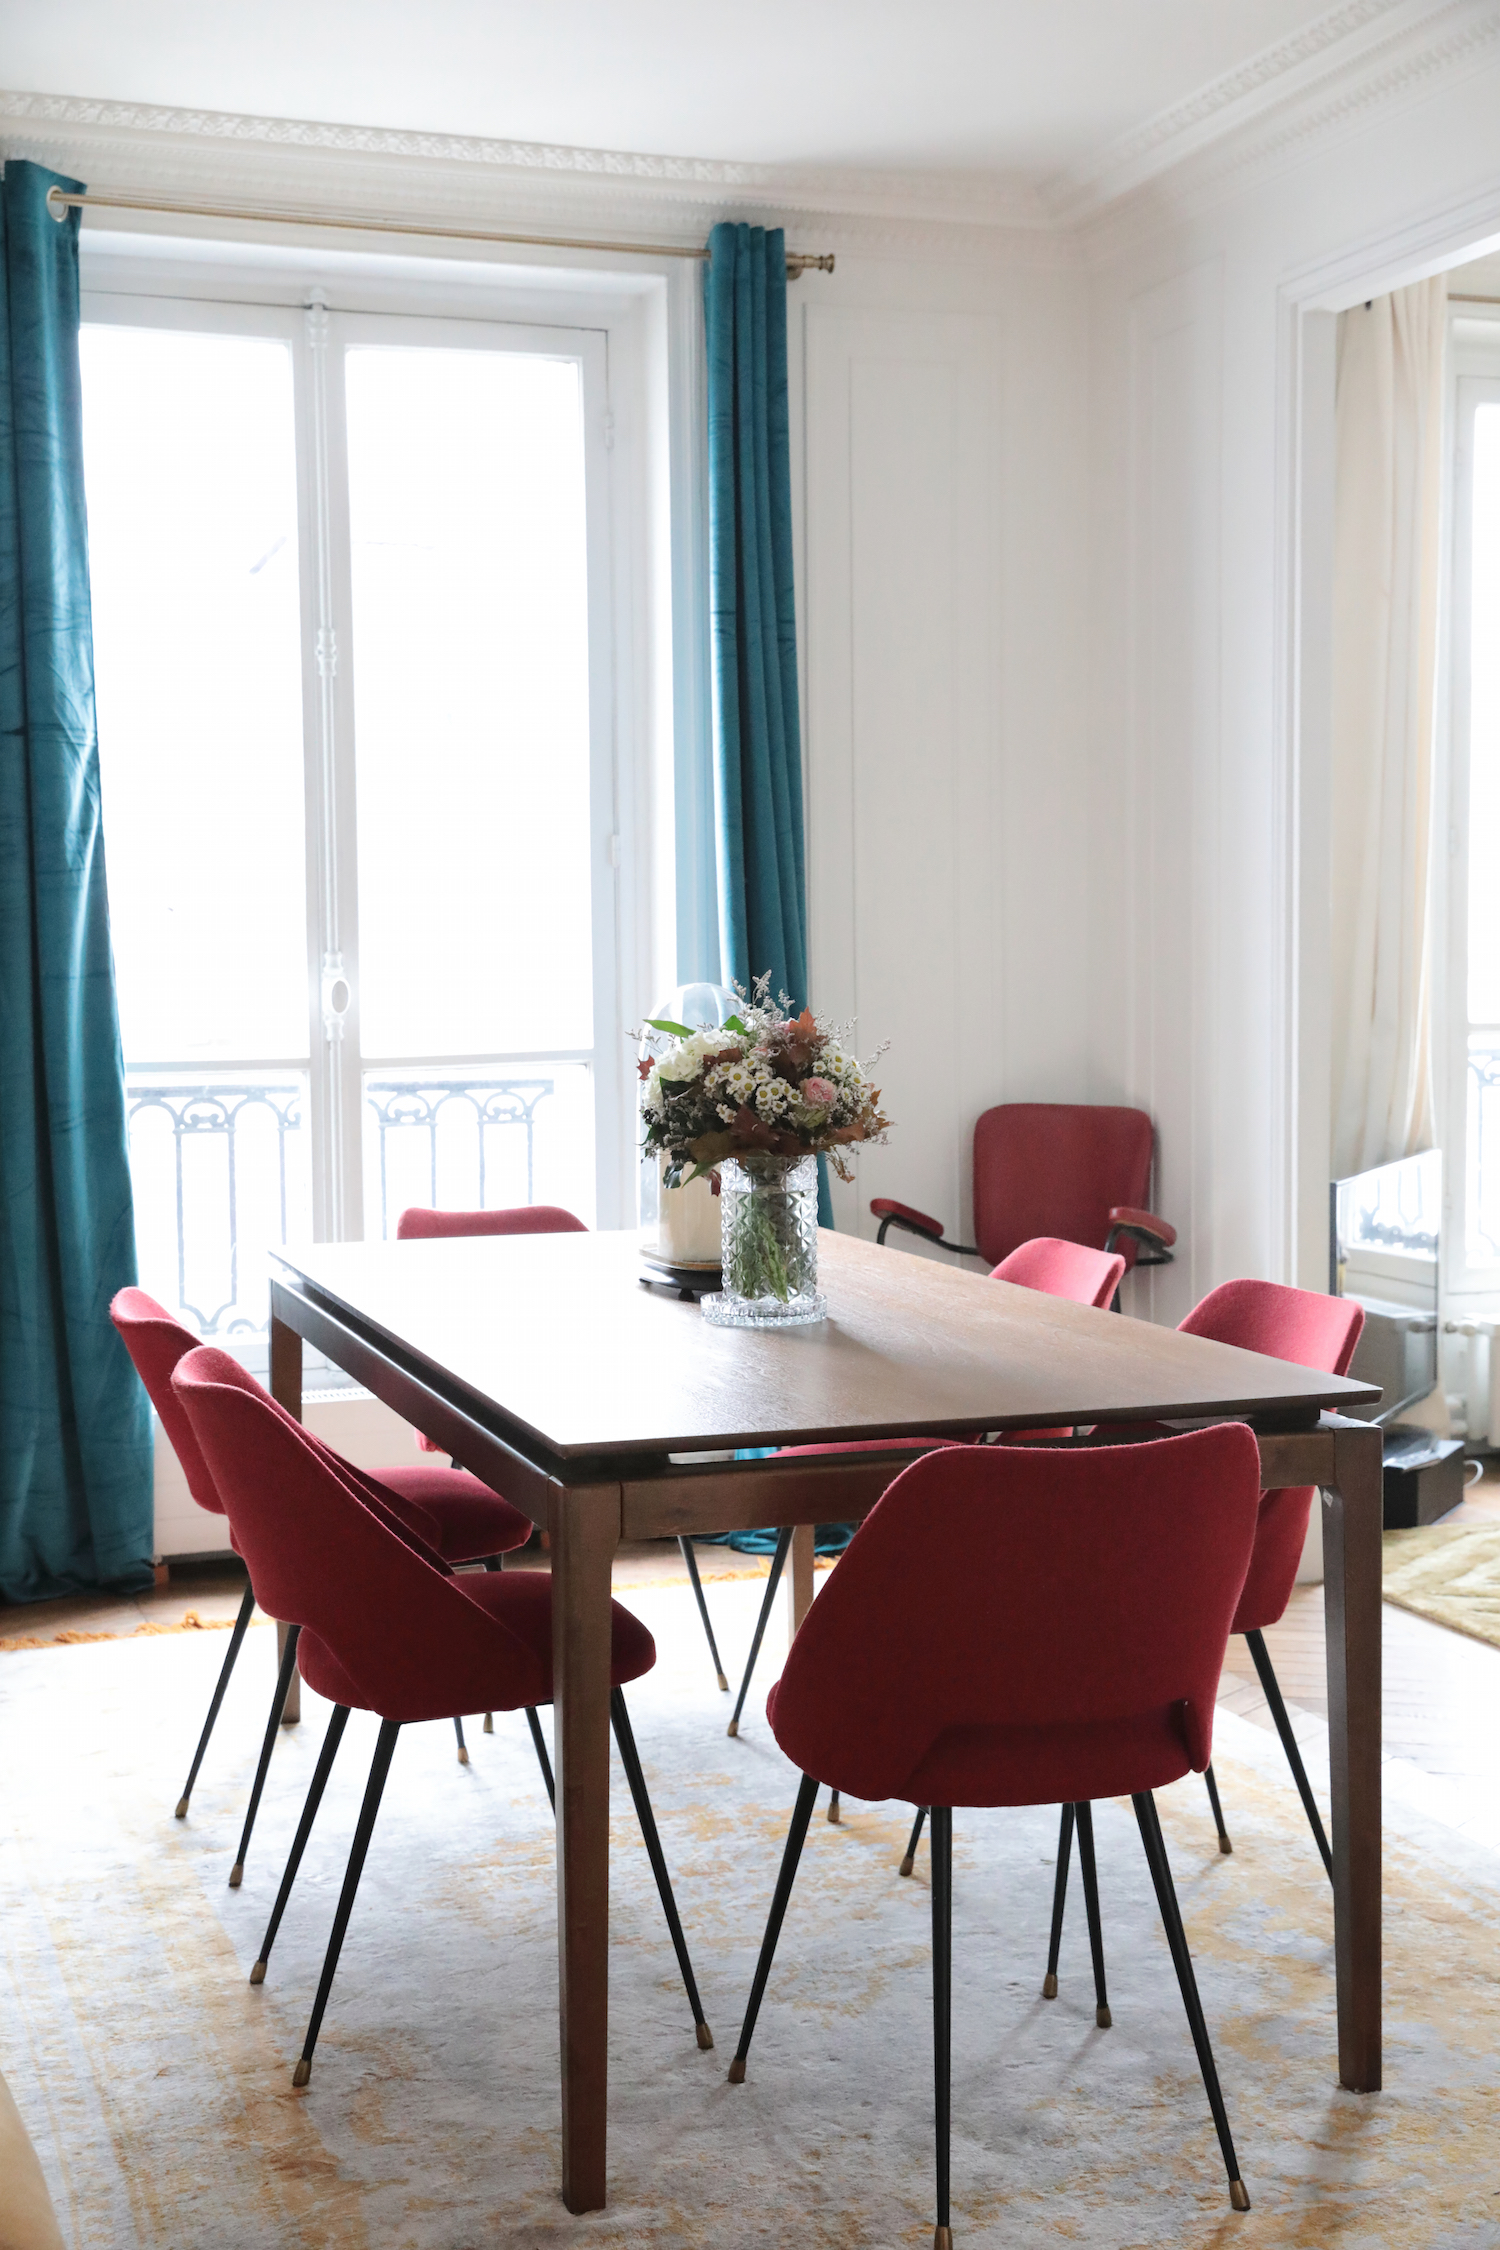 Bienvenue dans l 39 appartement glamour de camille omerin de for Appartement maison fr